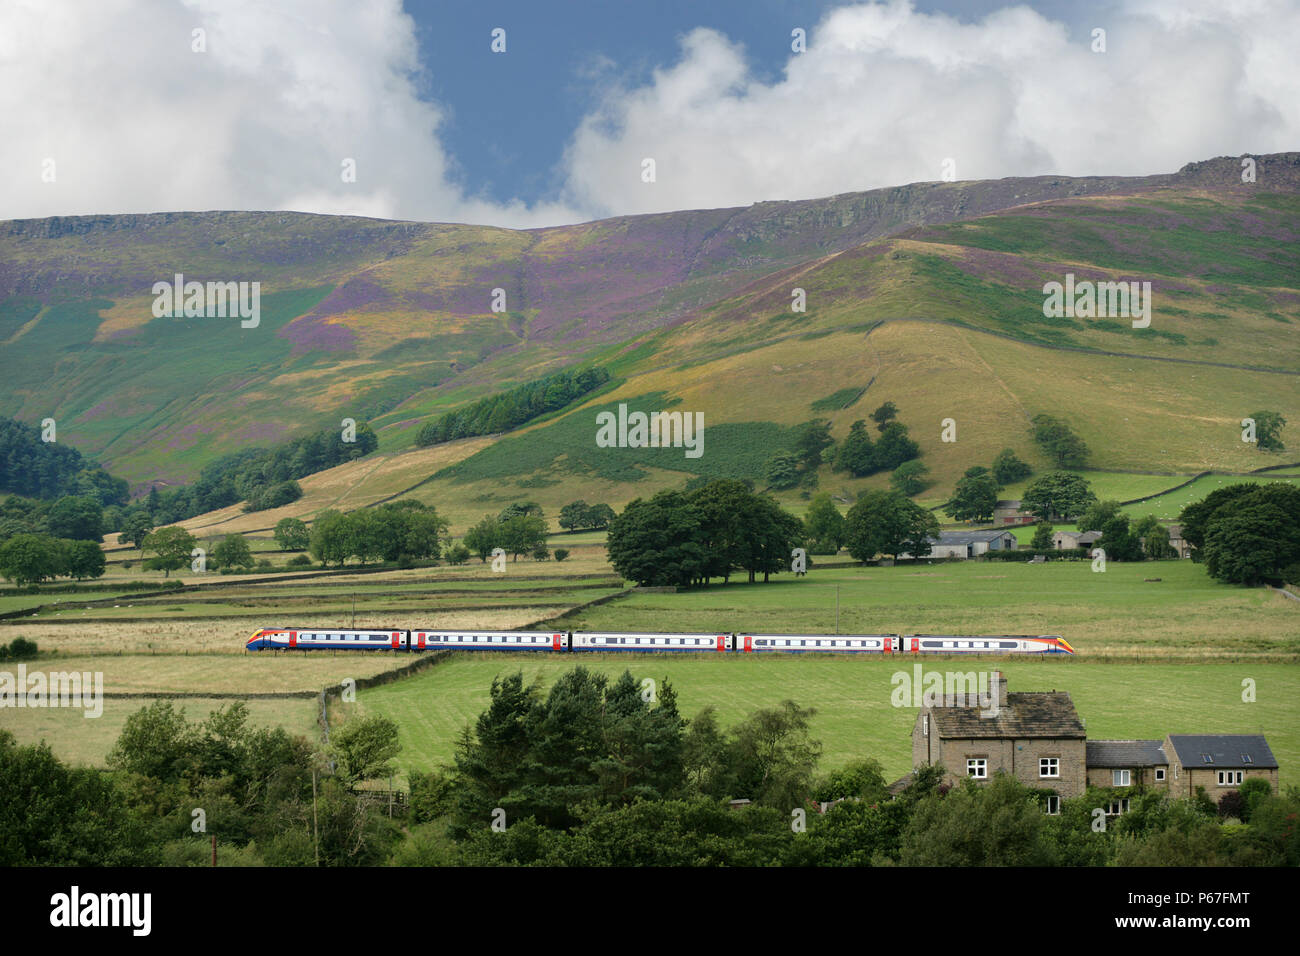 East midlands trains - Stock Image